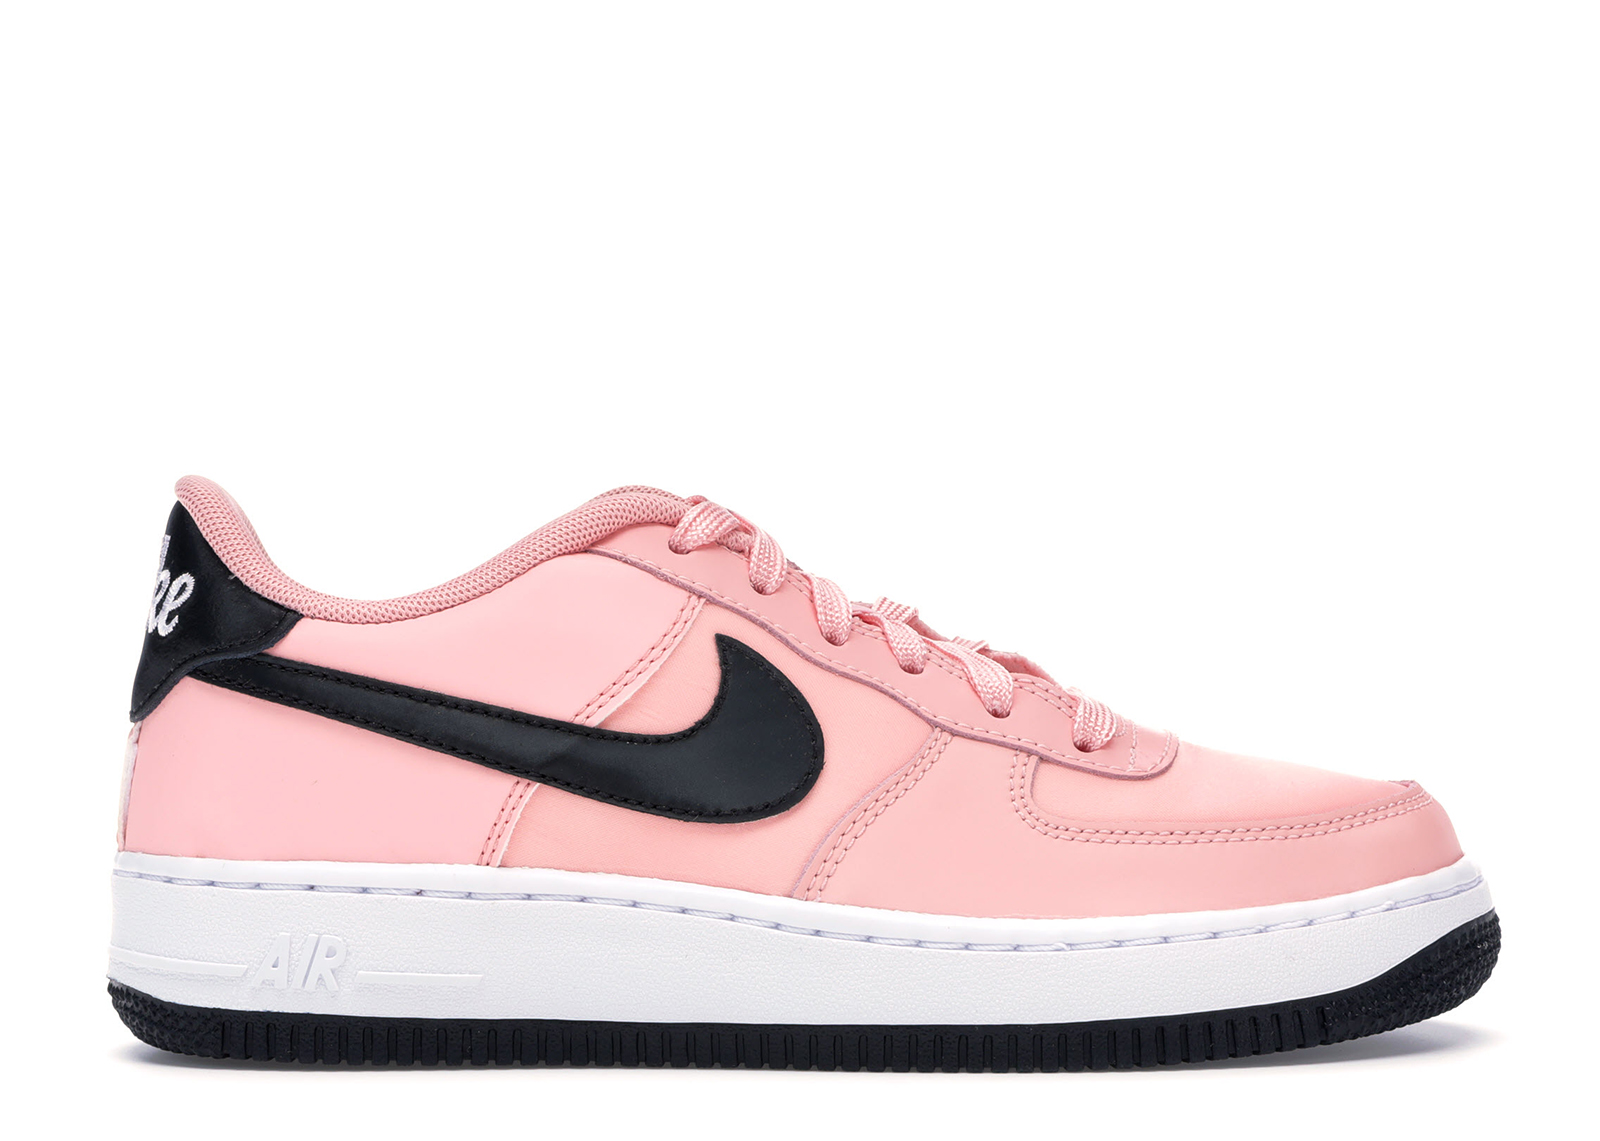 Nike Air Force 1 Low Valentines Day 2019 Bleached Coral (GS)